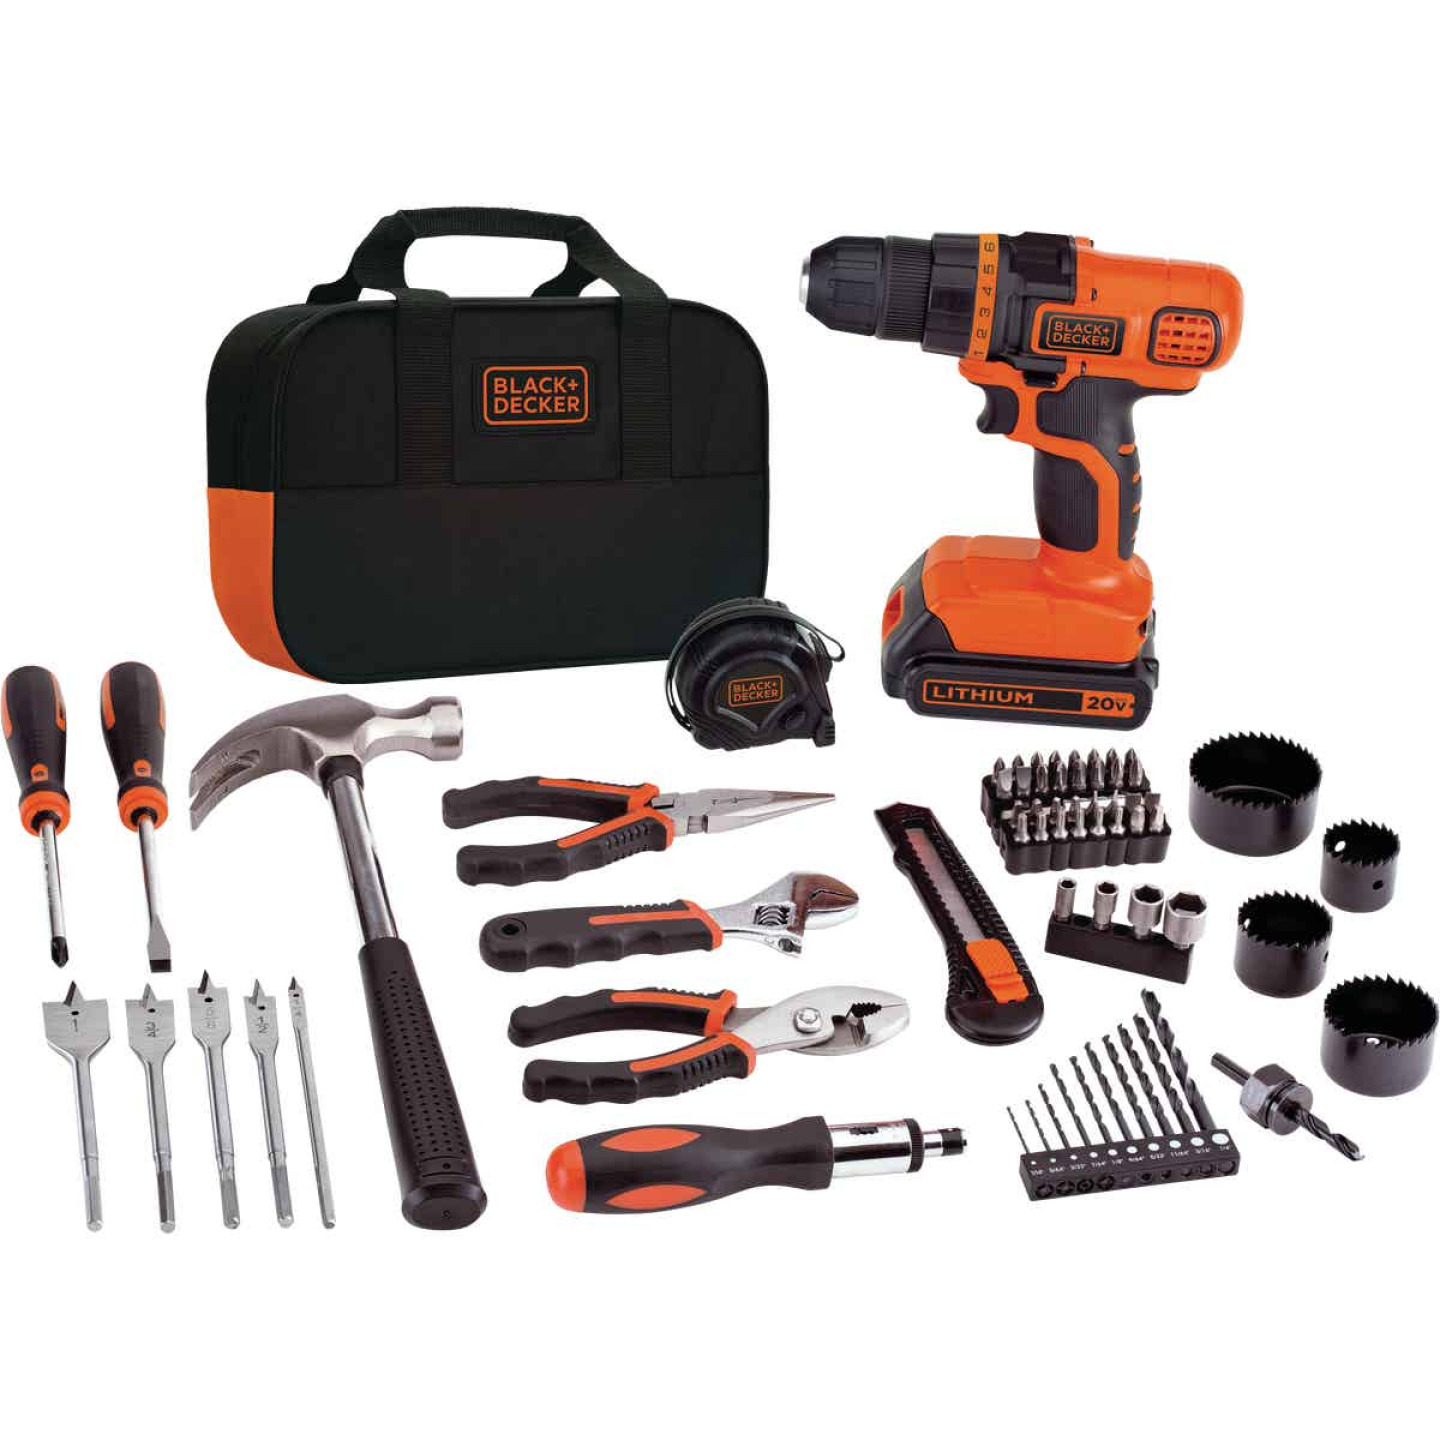 Black & Decker 20 Volt MAX Lithium-Ion 3/8 In. Cordless Drill Project Kit (68-Piece) Image 1